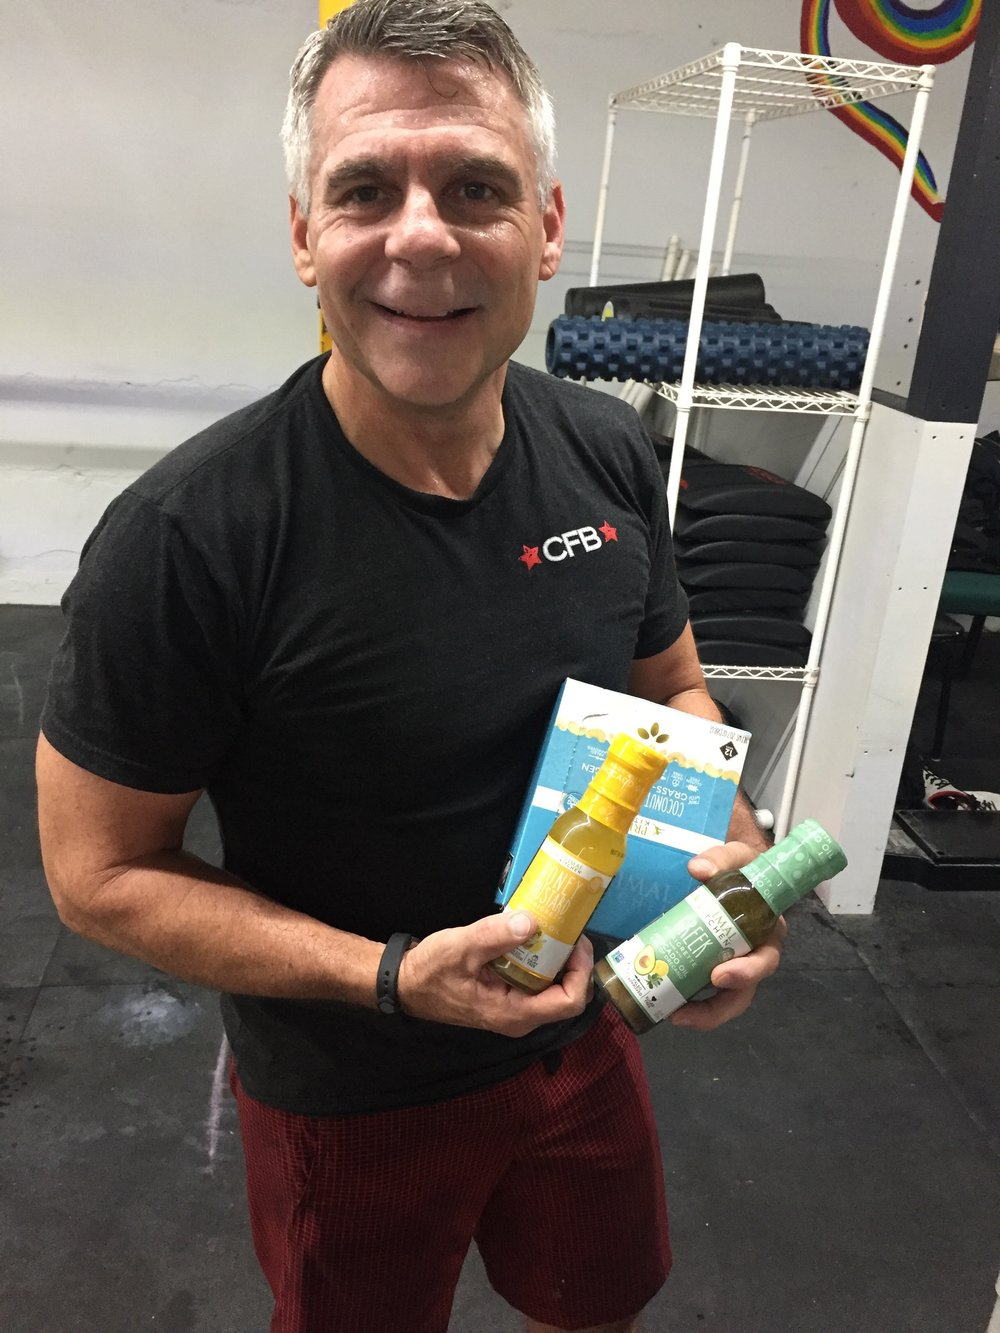 Matt Forshee accepts his Week Five prizes from Primal Kitchen. Avocado oil dressings and coconut cashew protein bars.